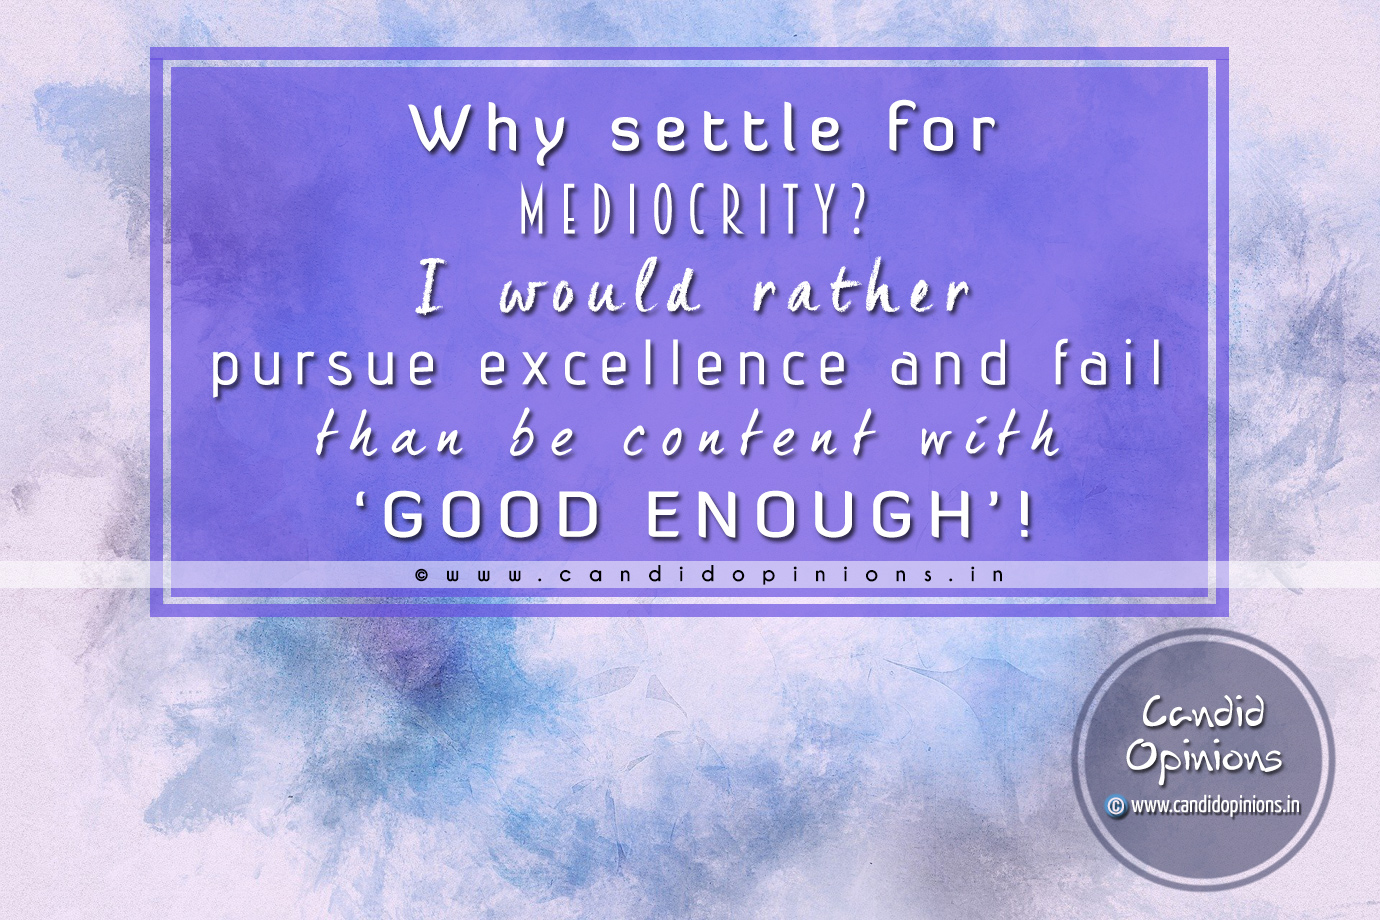 Why Settle For Mediocrity?